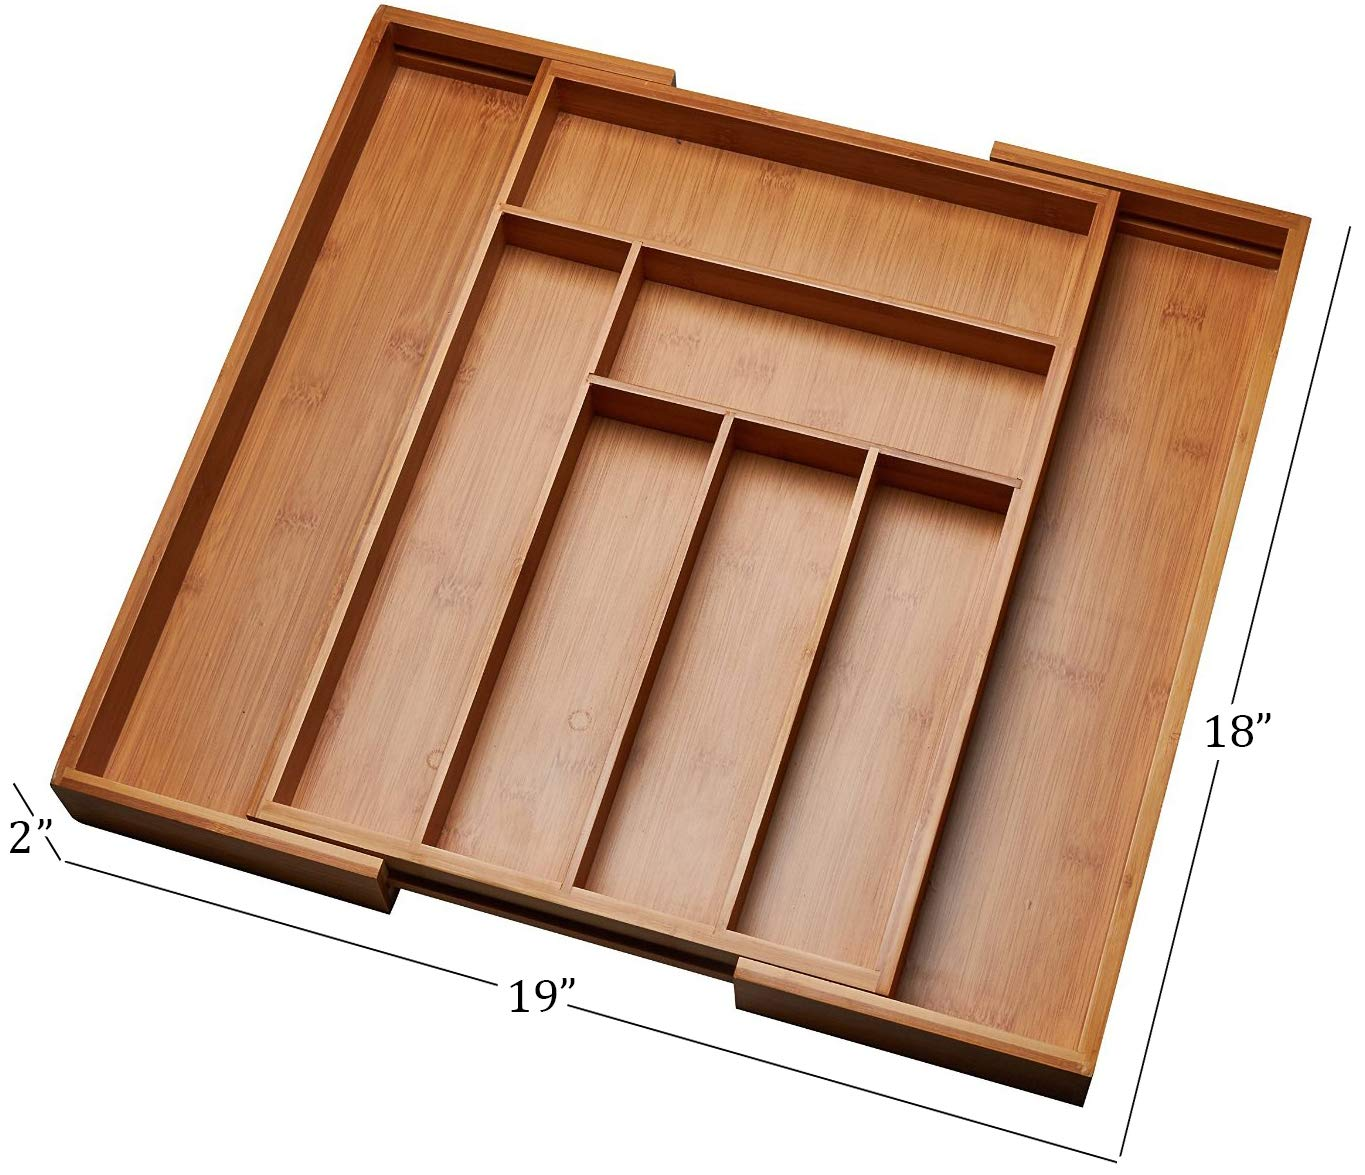 Kitchen Drawer Organizer, Adjustable Drawer Dividers to Fit Snugly Into Any Kitchen Drawer. Attractive Bamboo Wood Flatware, Cutlery and Utensil Tray is Also a Great Drawer Organizer Around the Home. by Handy Laundry (Image #4)